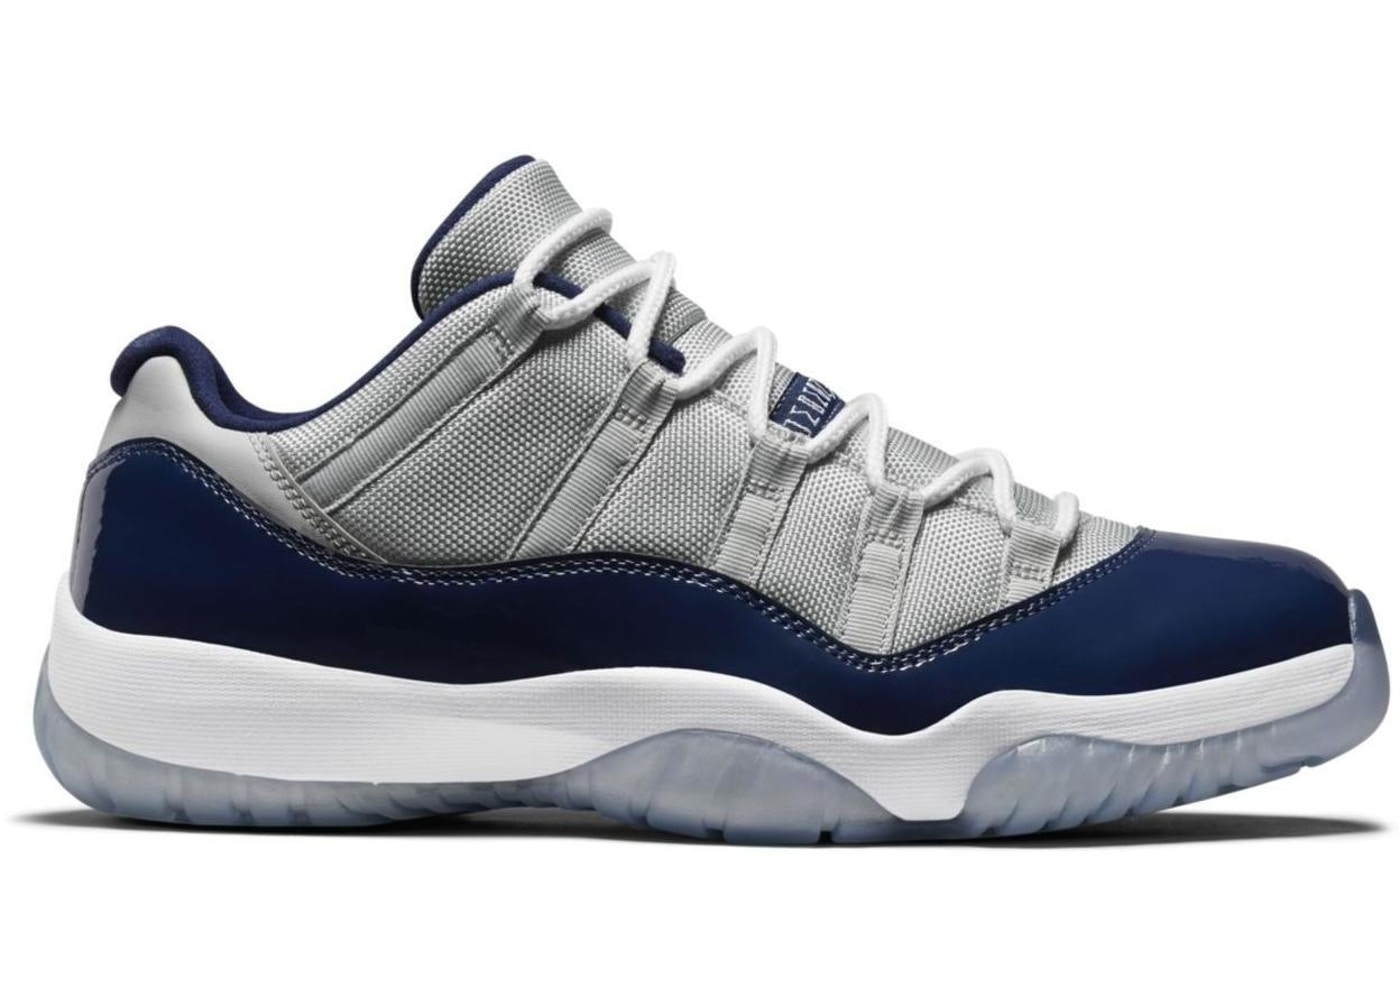 cb8b35b9985 Jordan 11 Retro Low Georgetown - 528895-007